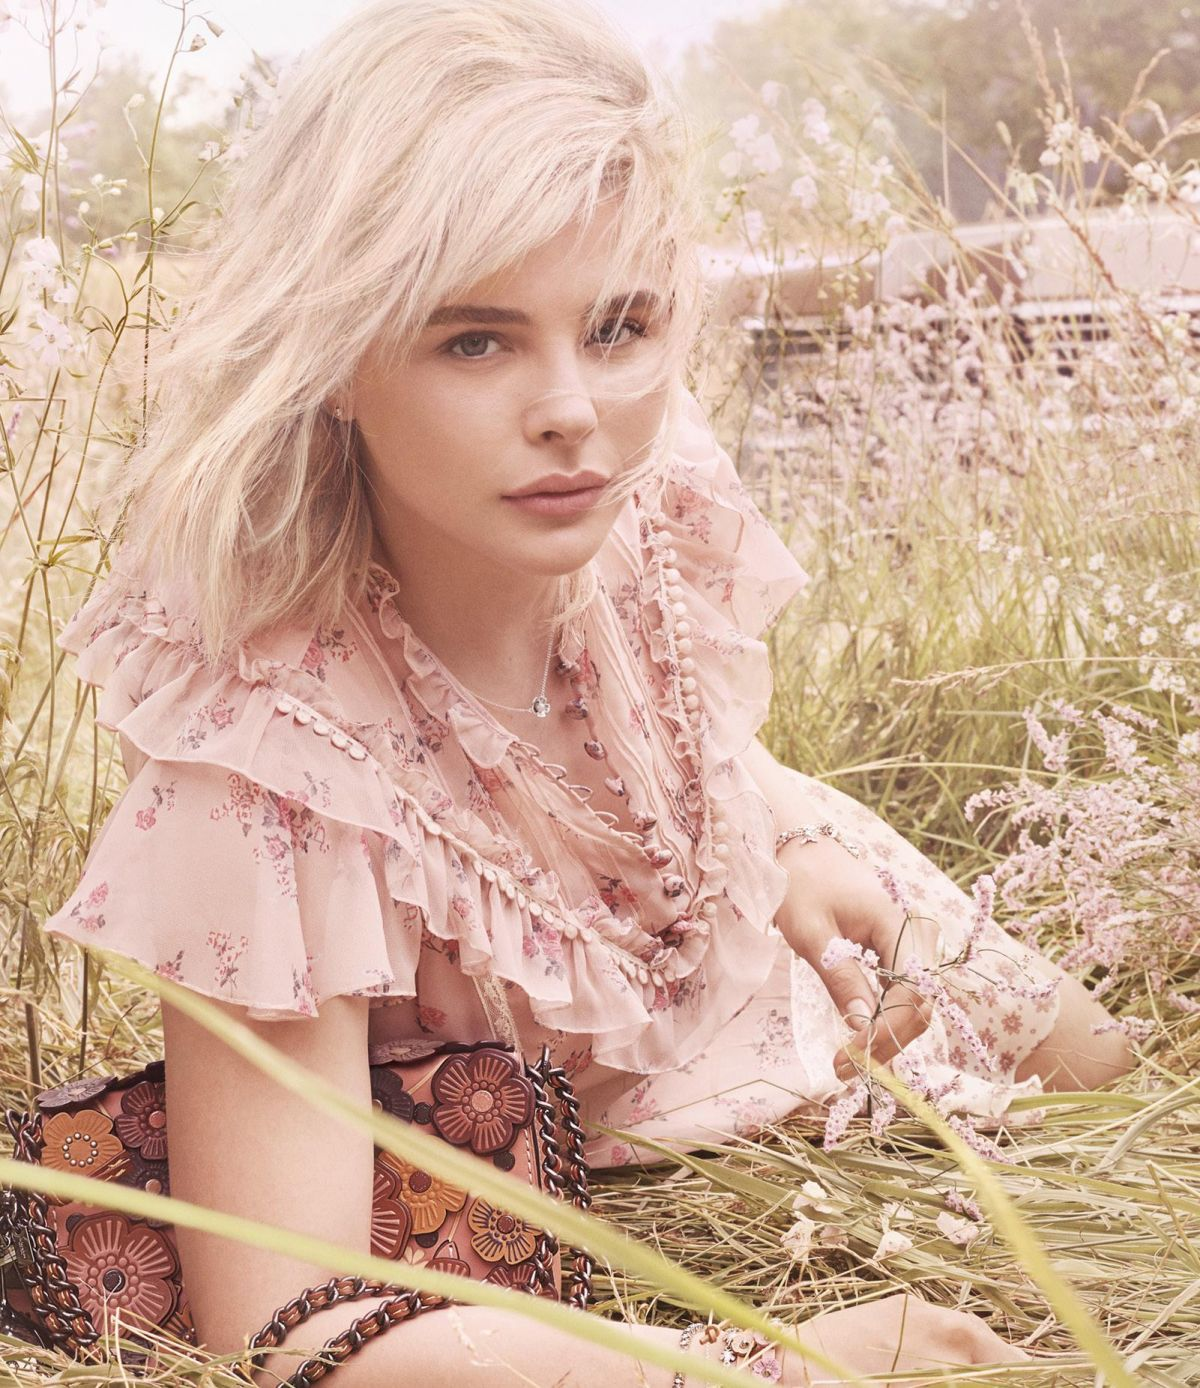 Chloe Grace Moretz Stars in Coachs Latest Ad Campaign